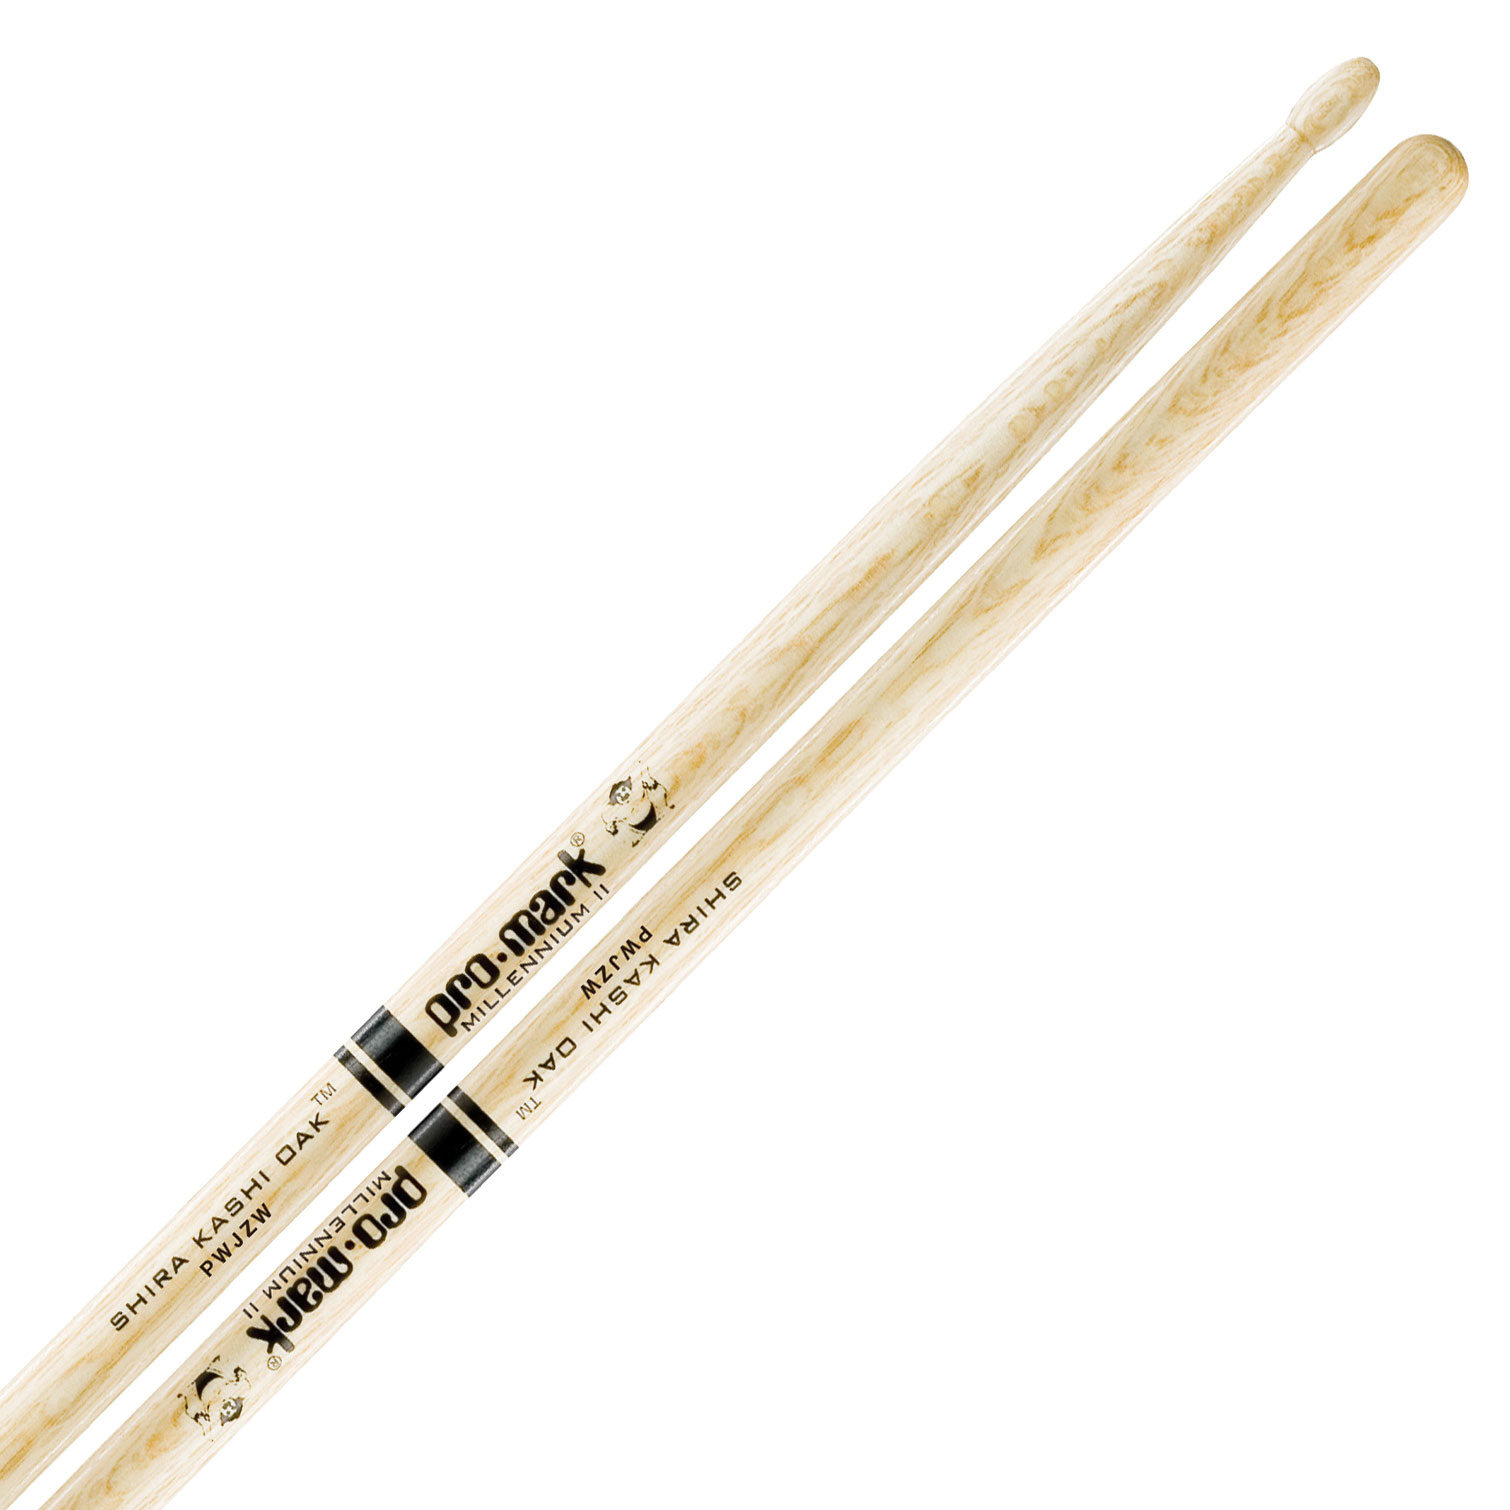 Promark Shira Kashi Oak Jazz Wood Tip Drumsticks